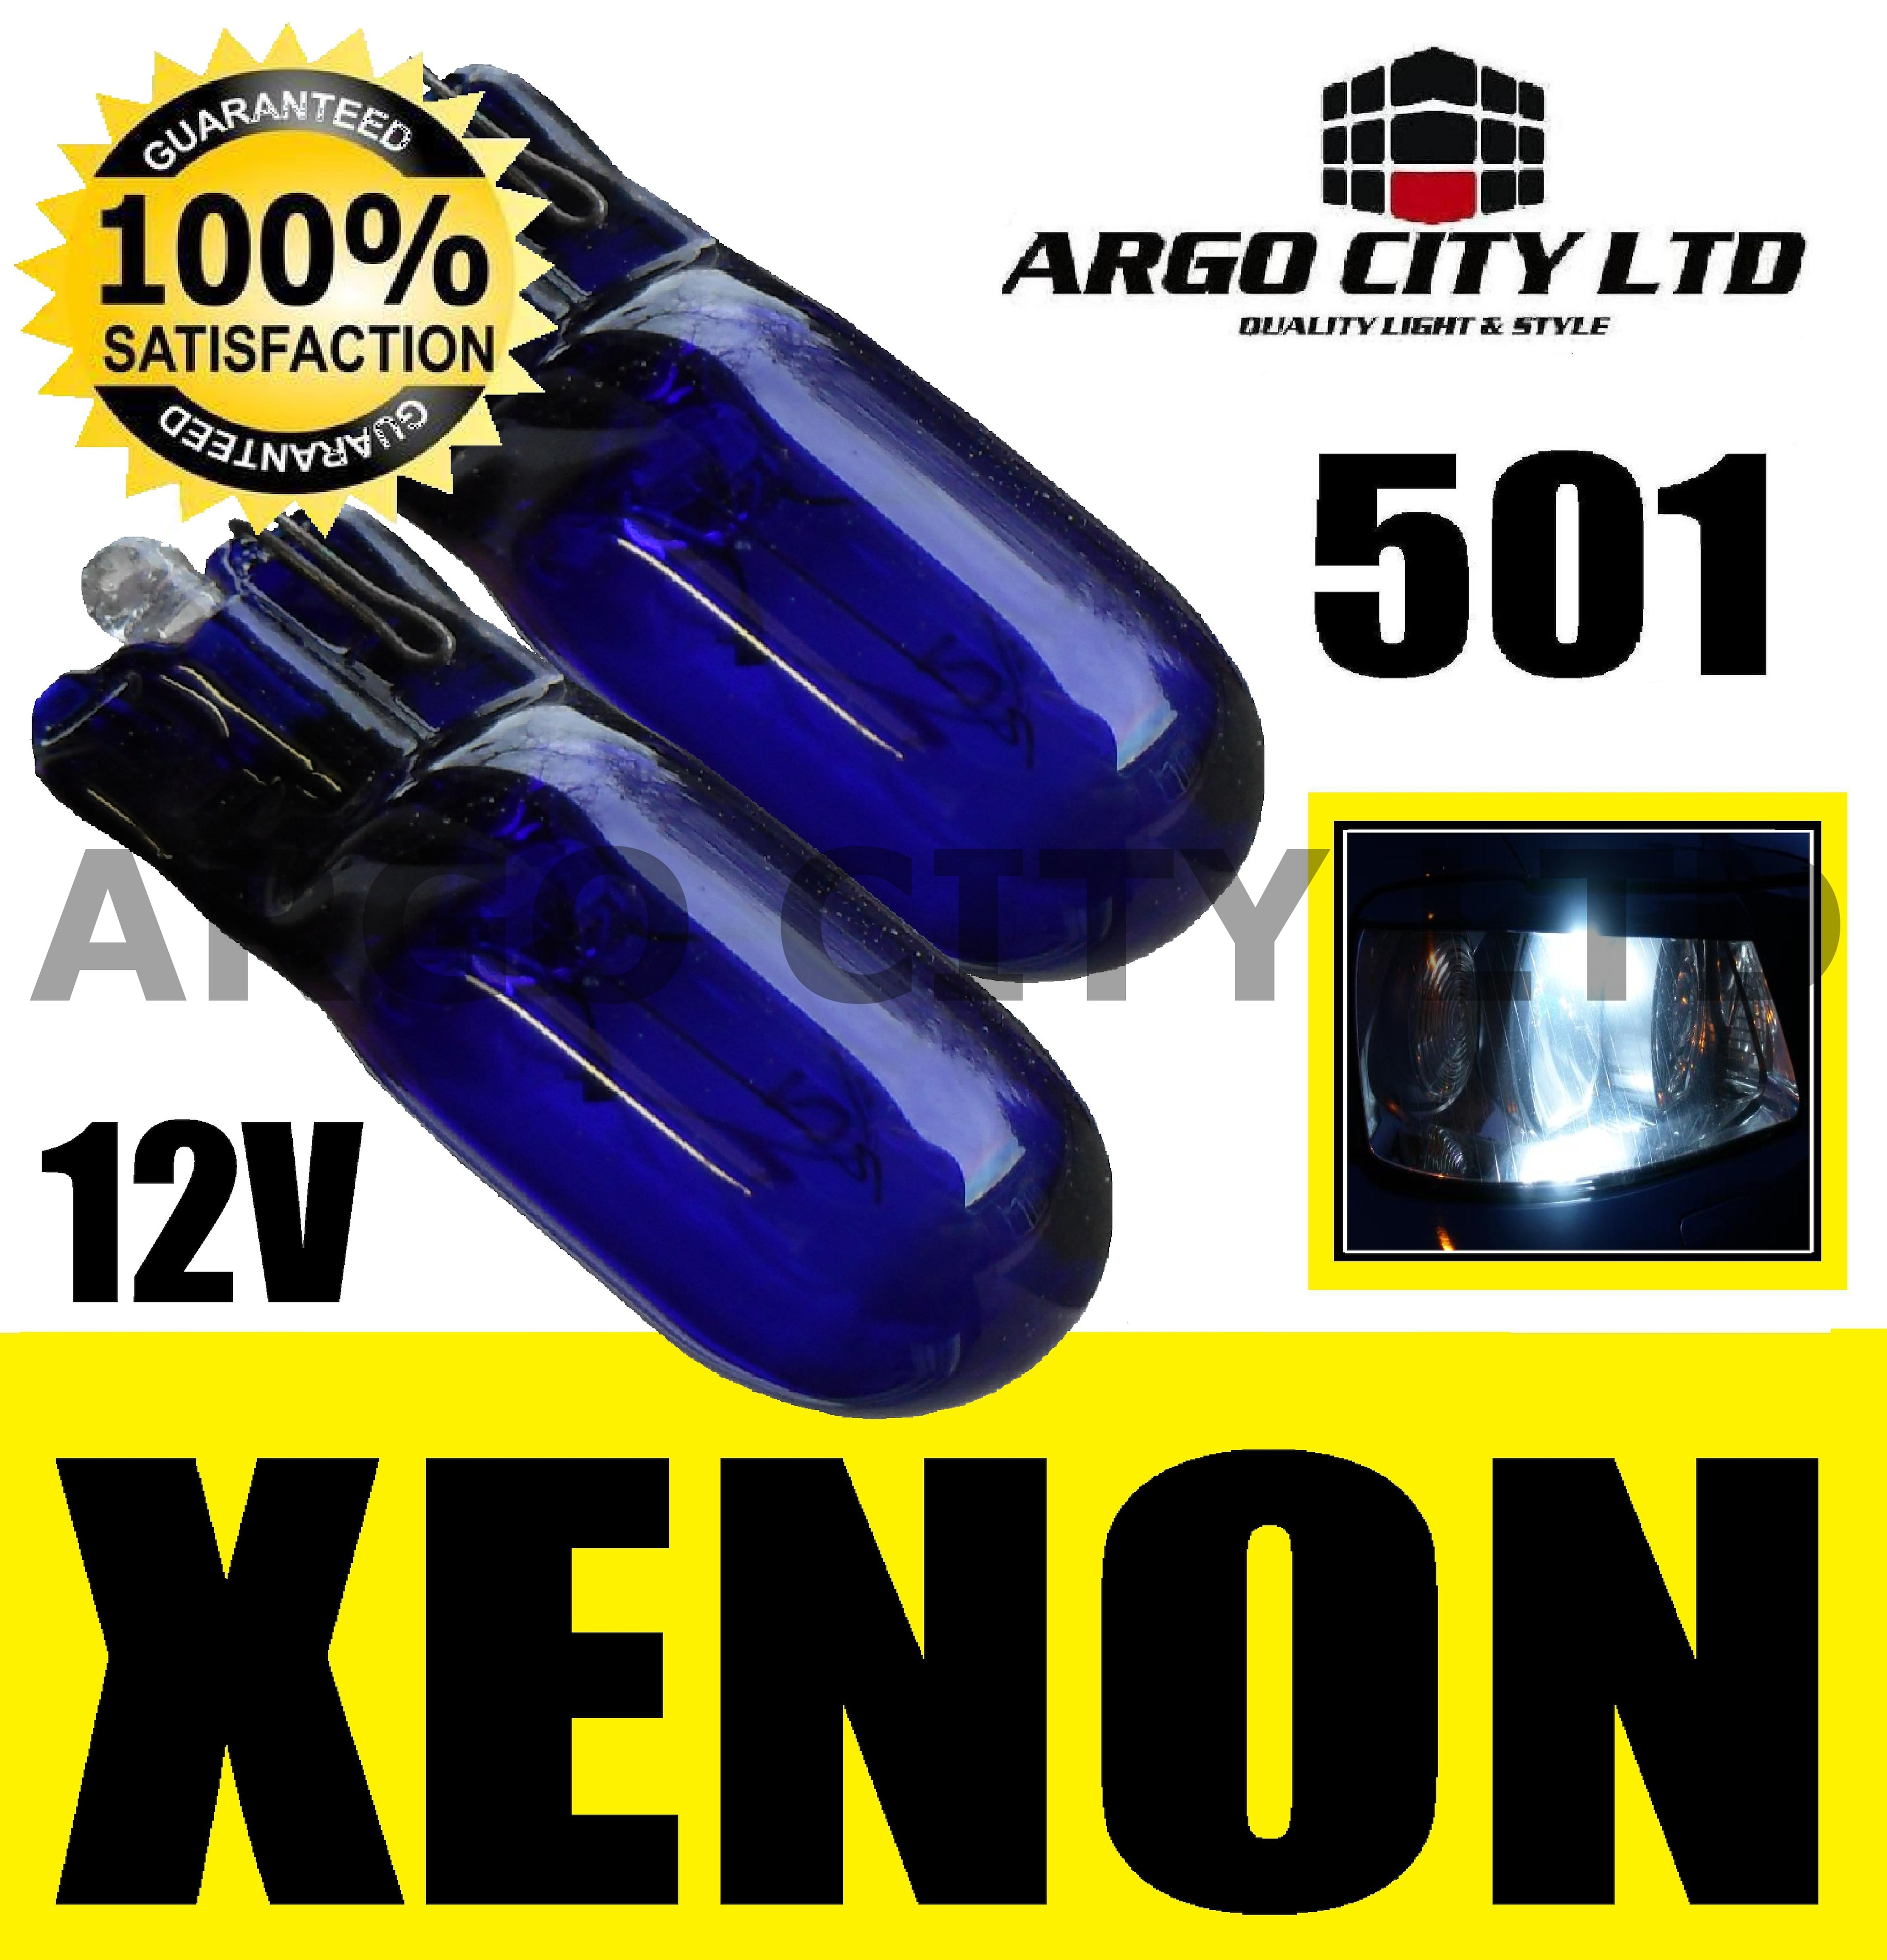 HONDA VTR 1000 SP1 SC45 Xenon Sidelight Bulbs W5W